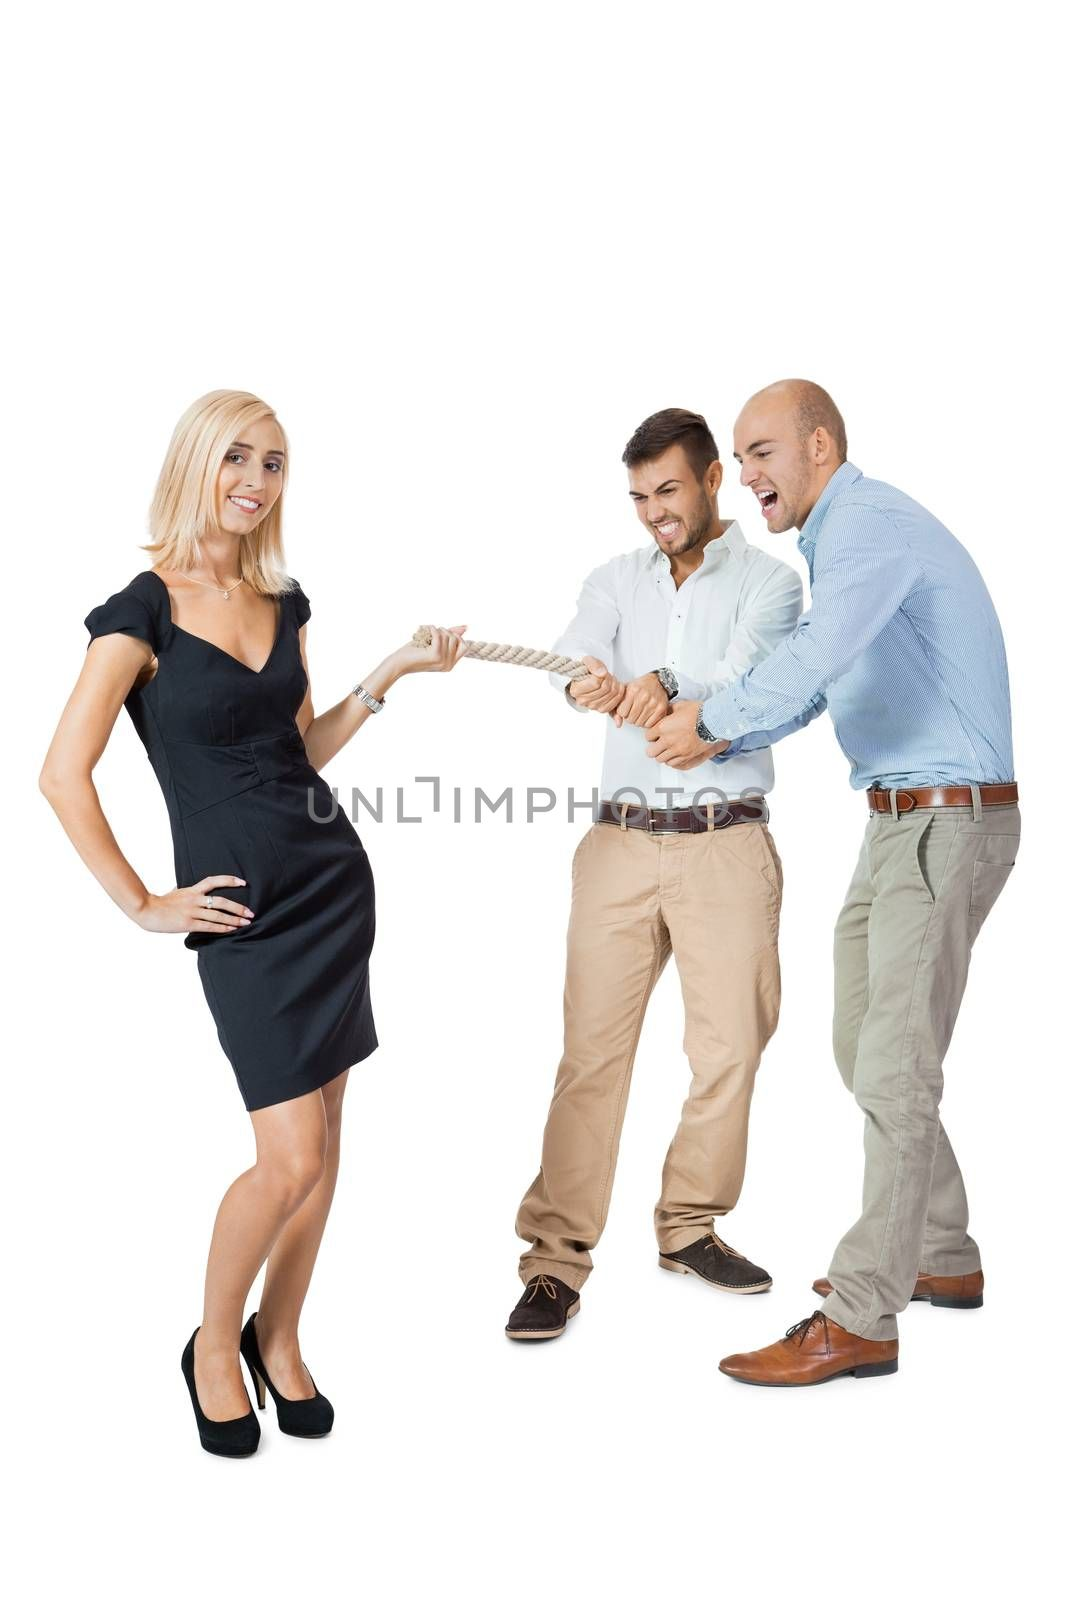 Beautiful strong fit woman demonstrating her dominance in a tug of war with two men pulling as hard as they can on the end of a rope she is holding while she remains nonchalant and glamorous, on white